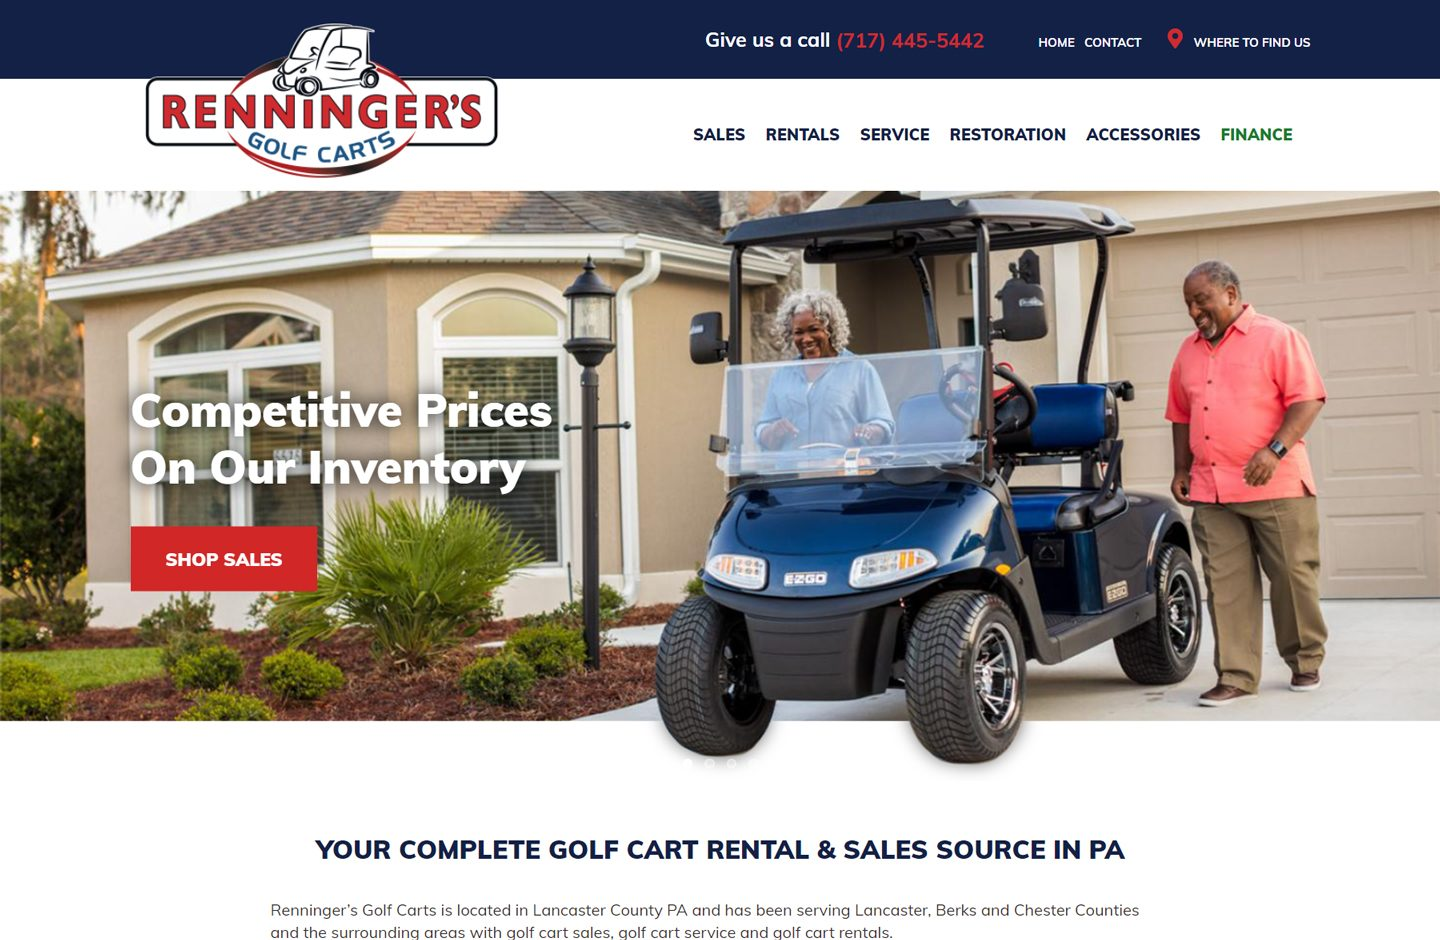 Rennigers Golf Carts